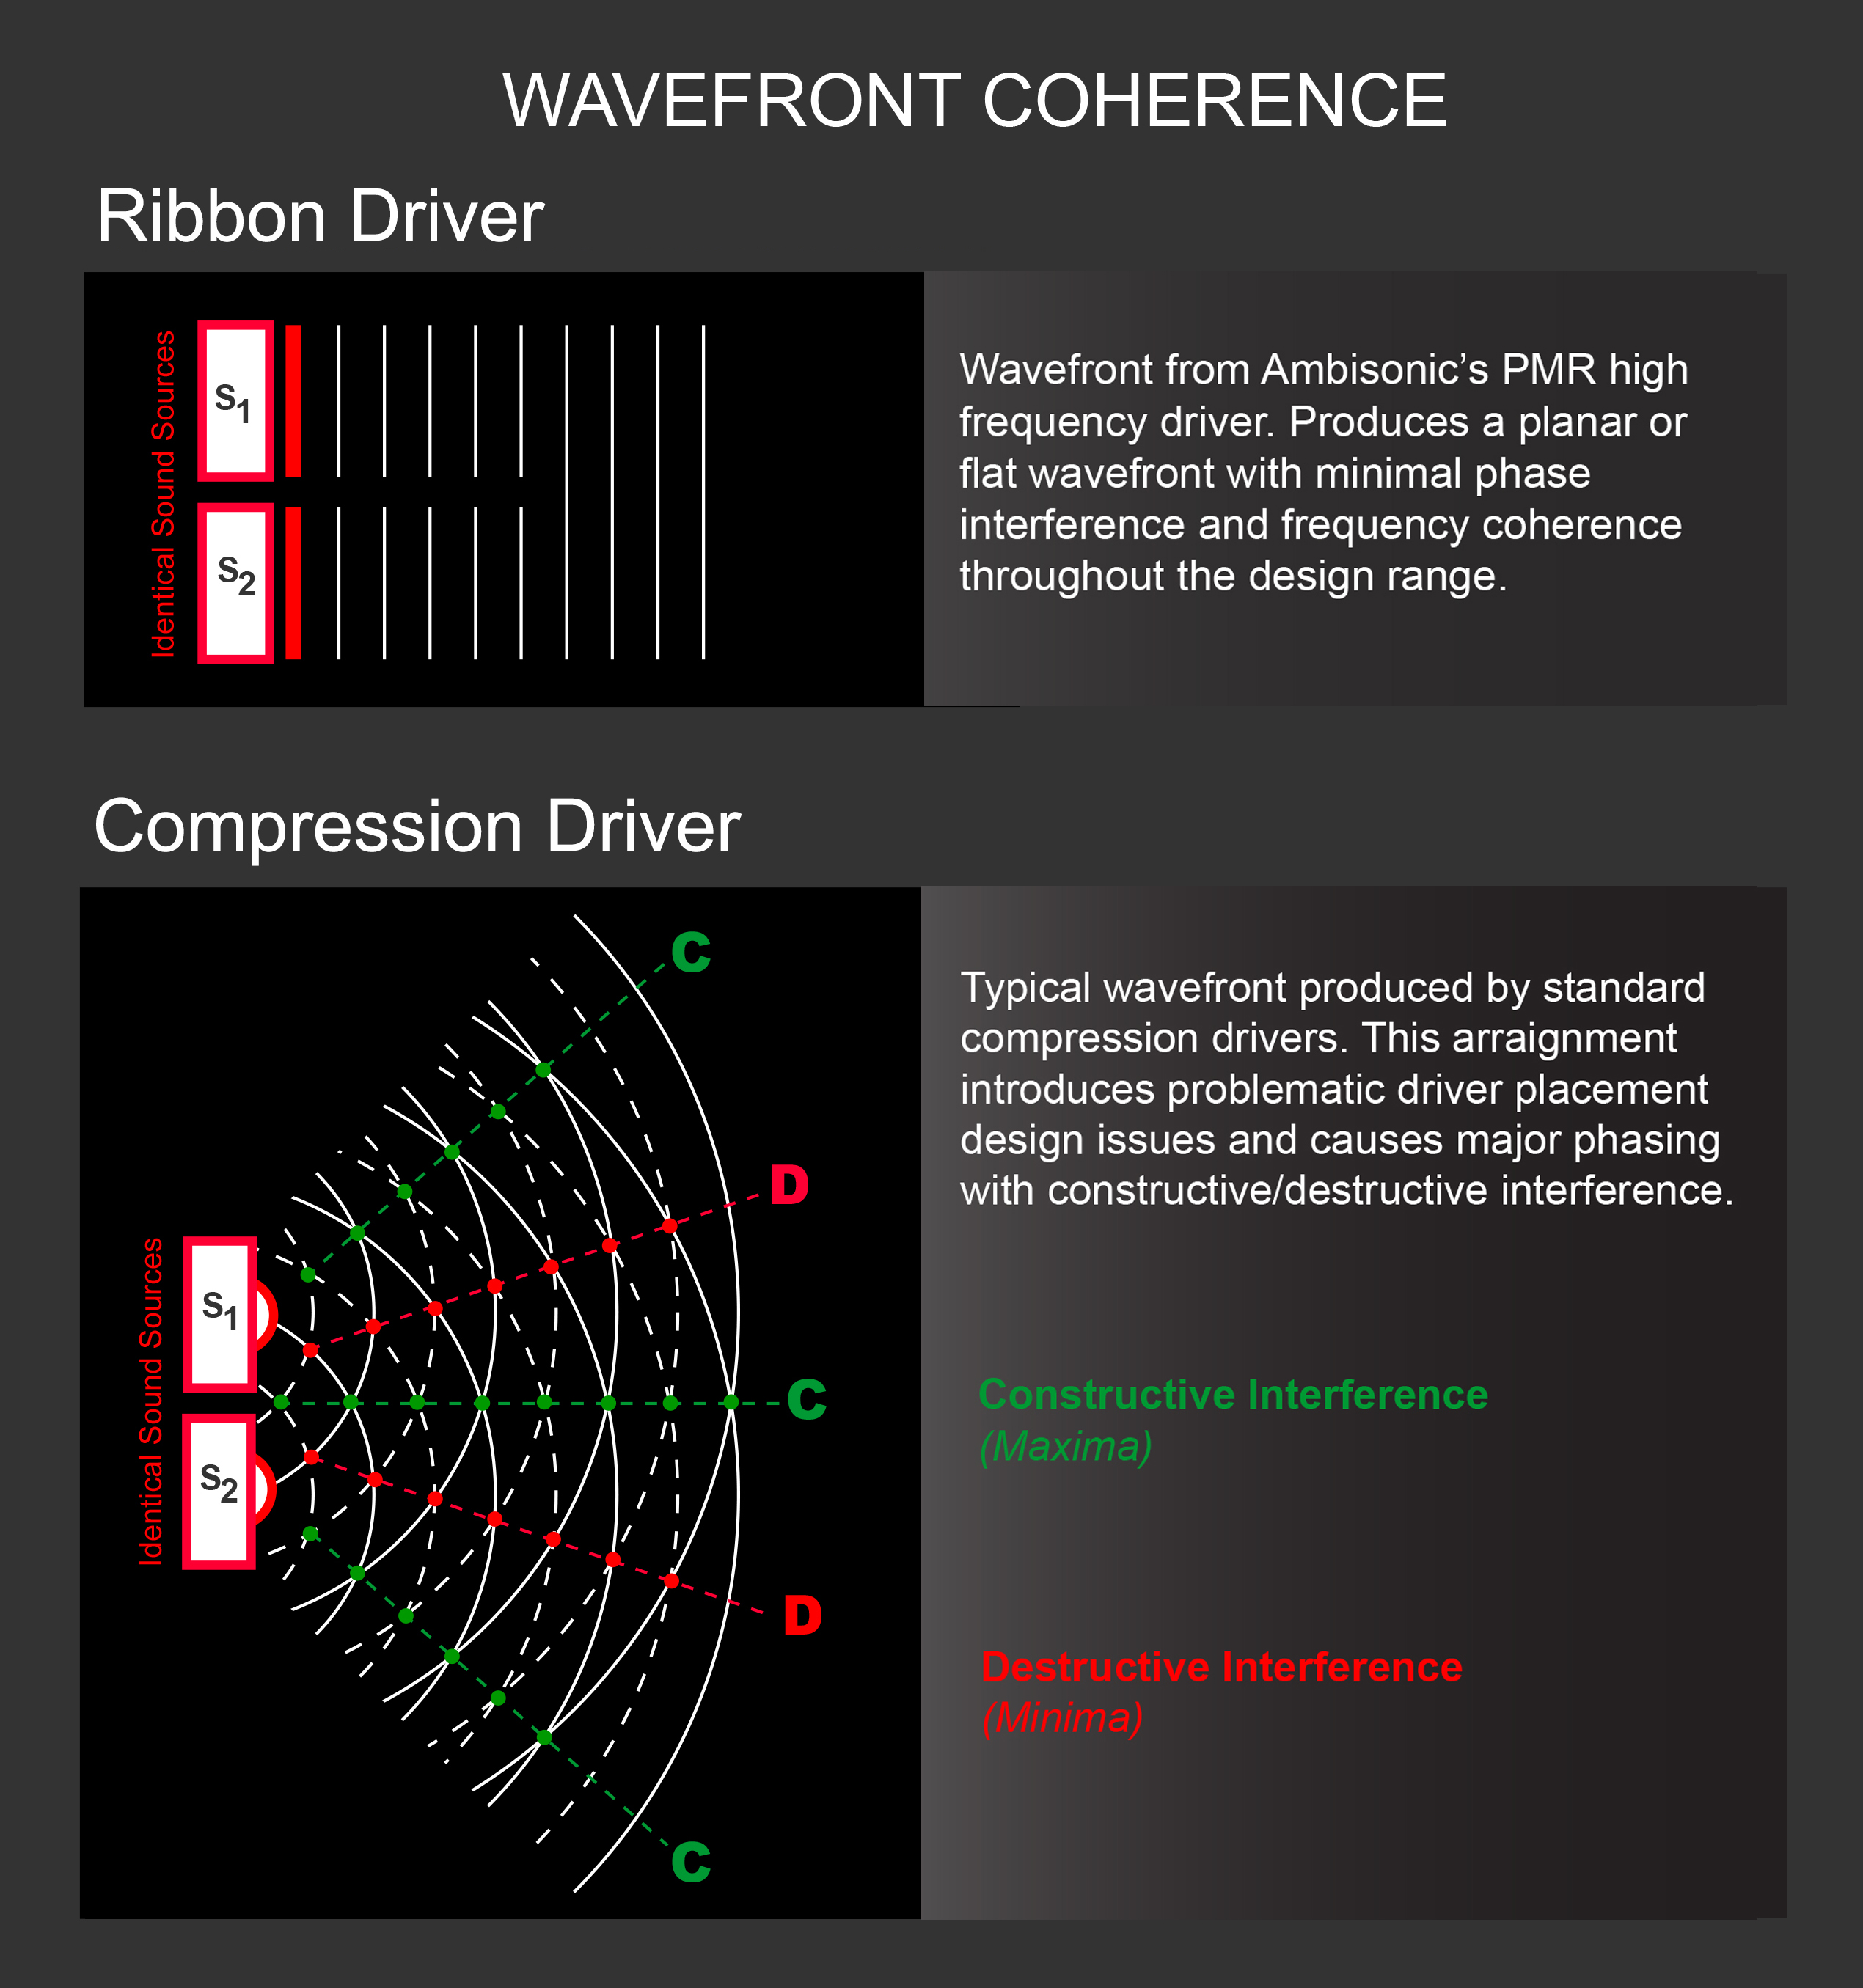 Wavefront Coherence